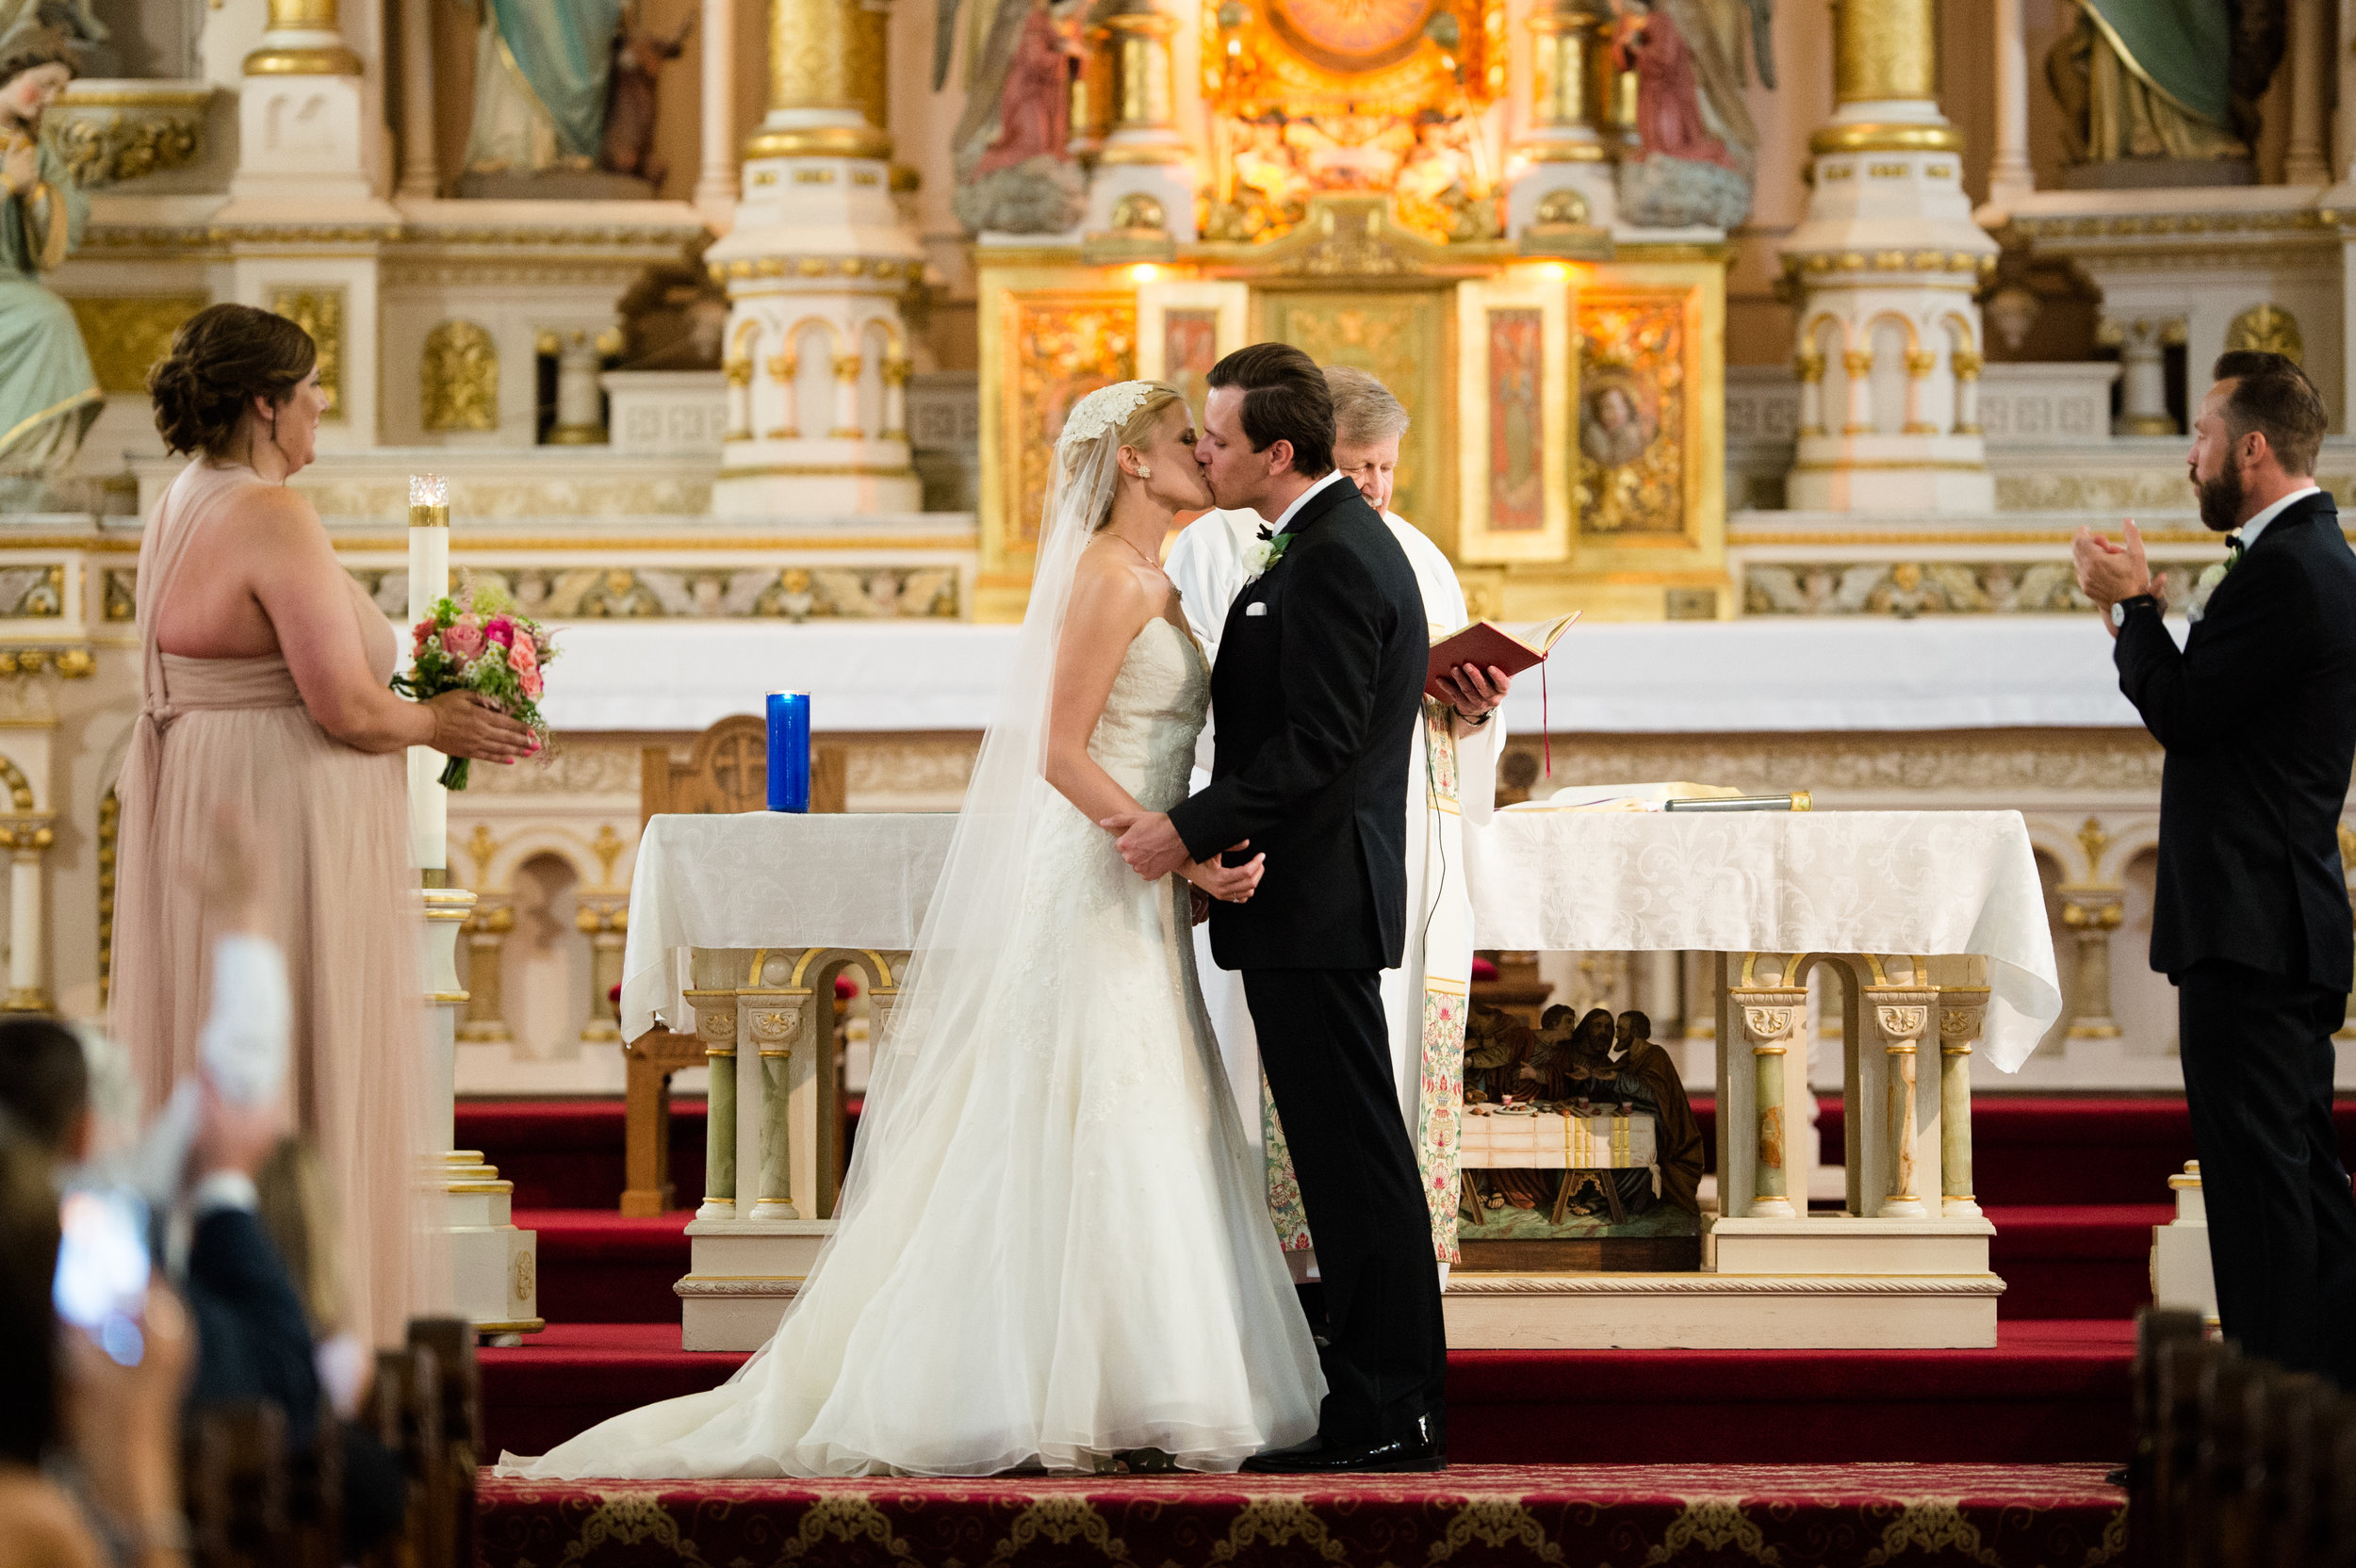 Wedding ceremony at St. Michael's Church in chicago